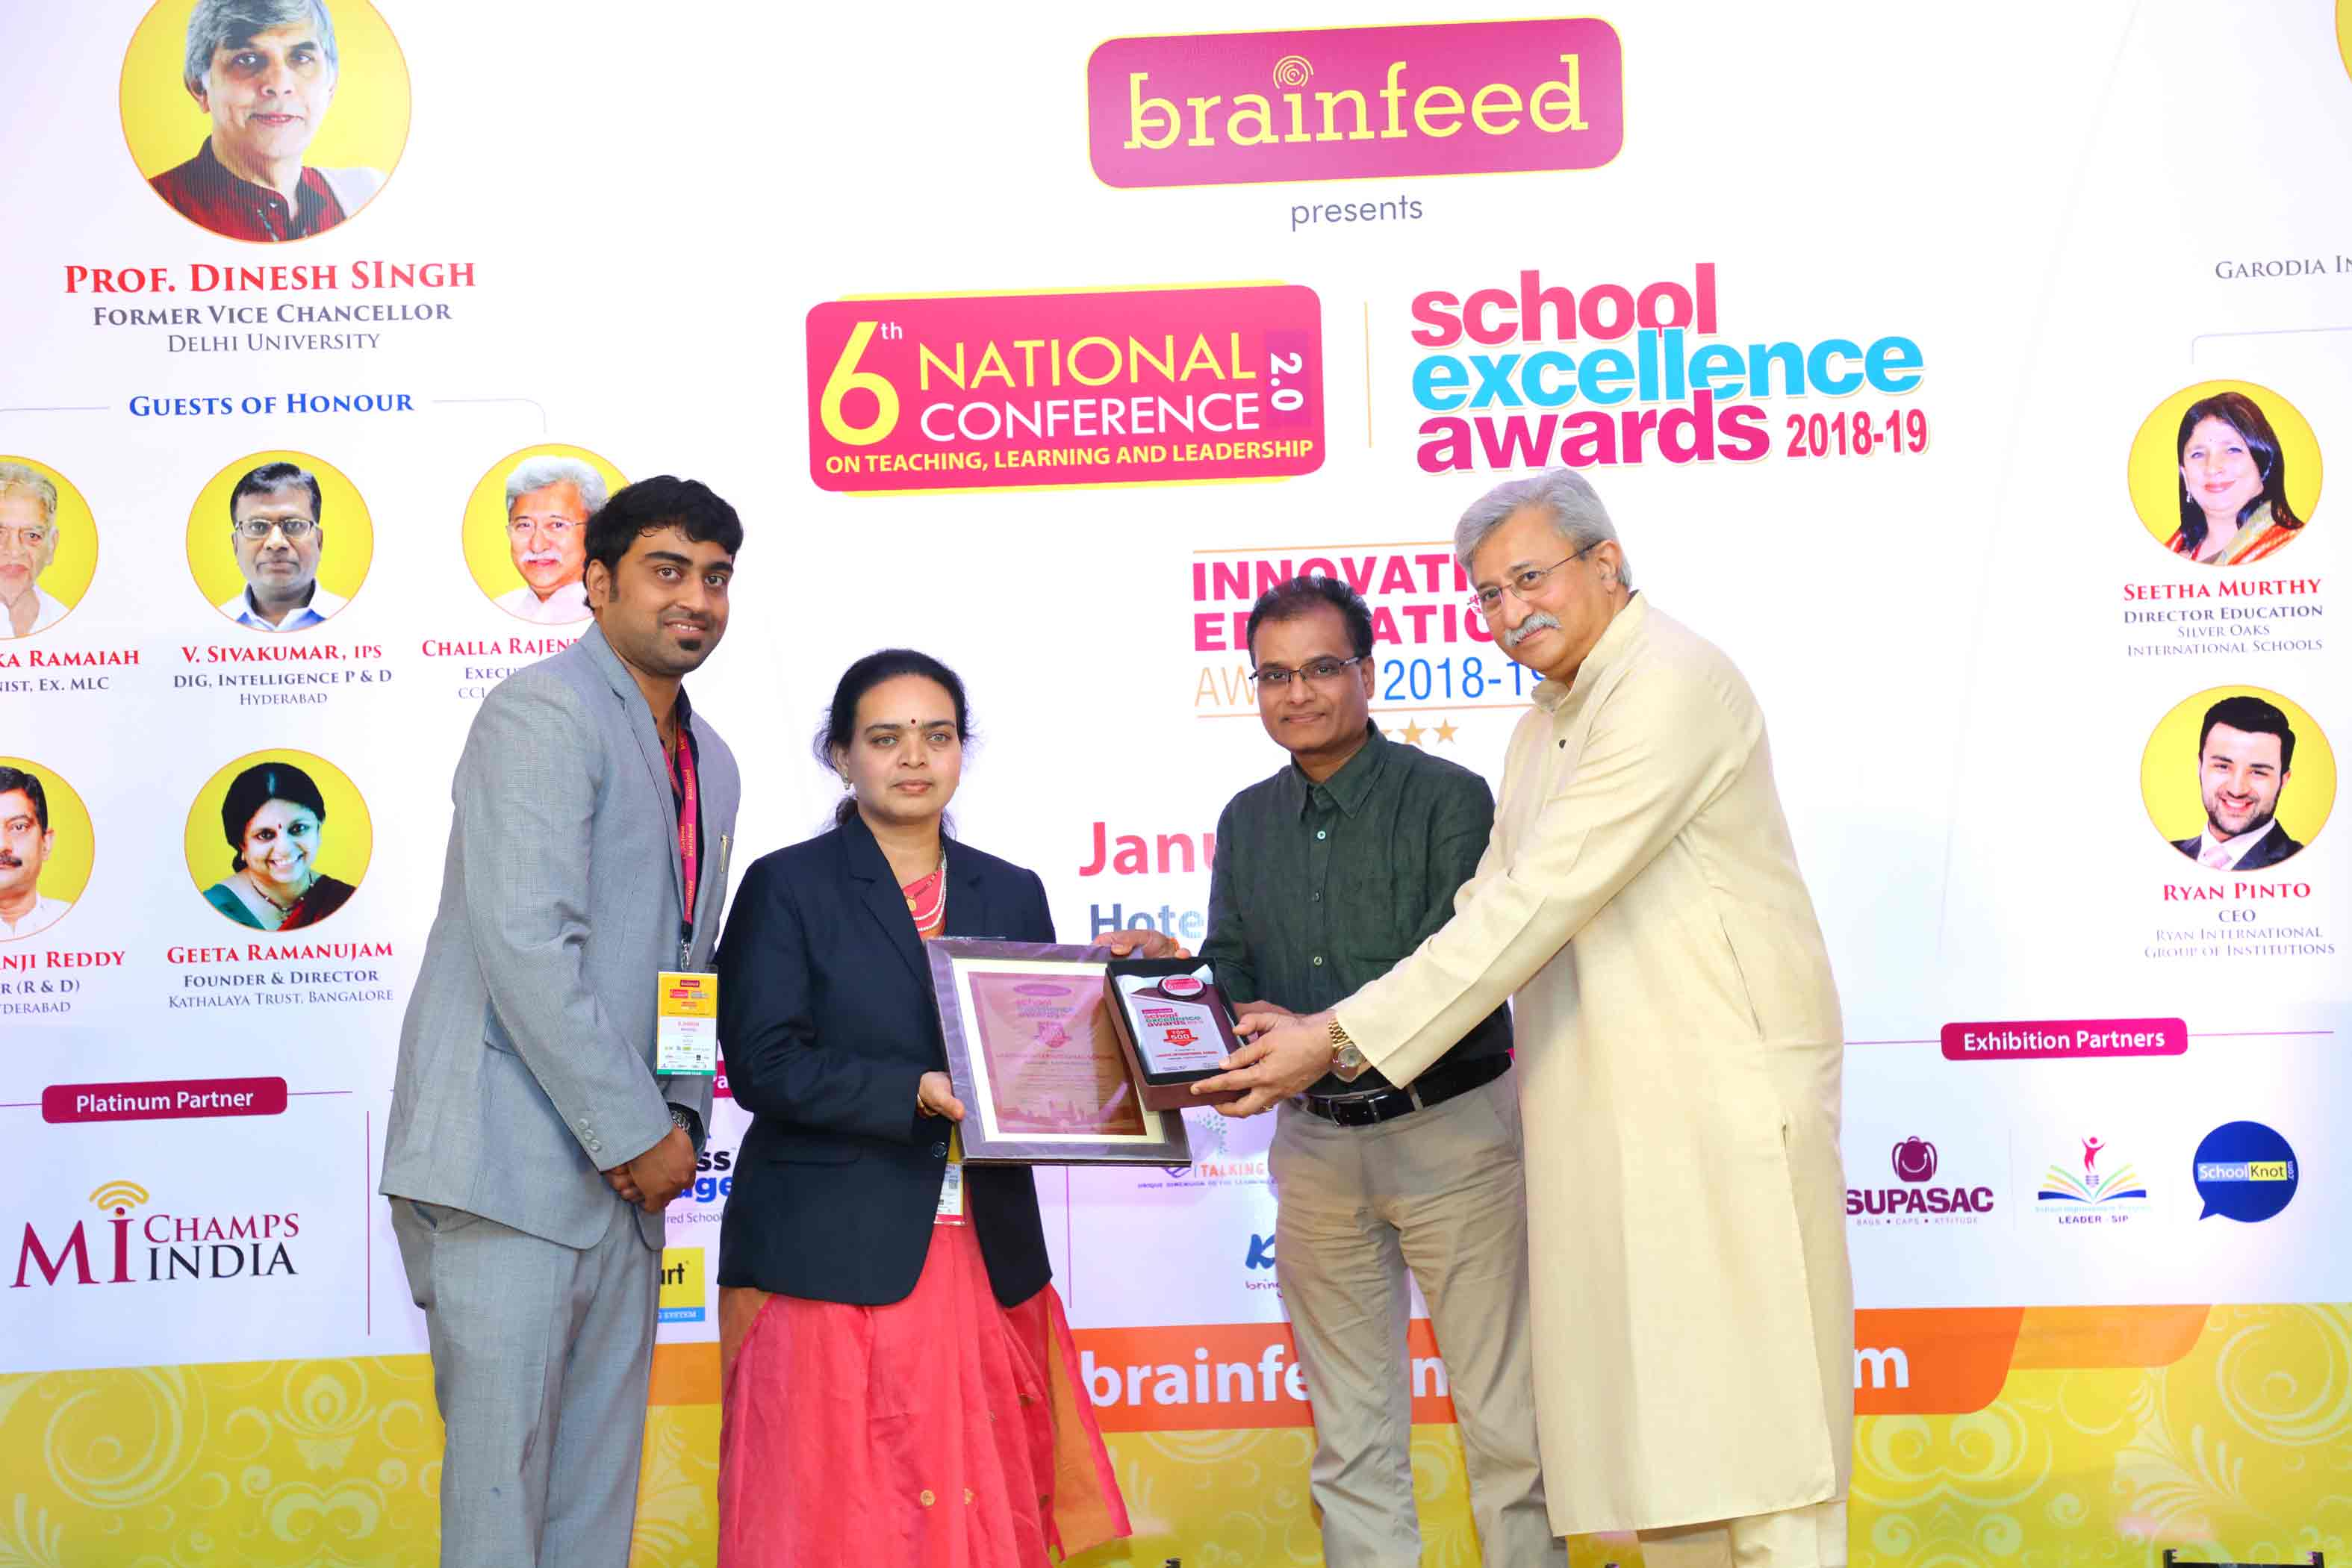 Brainfeed 6th national Conference Photographs hyderabad